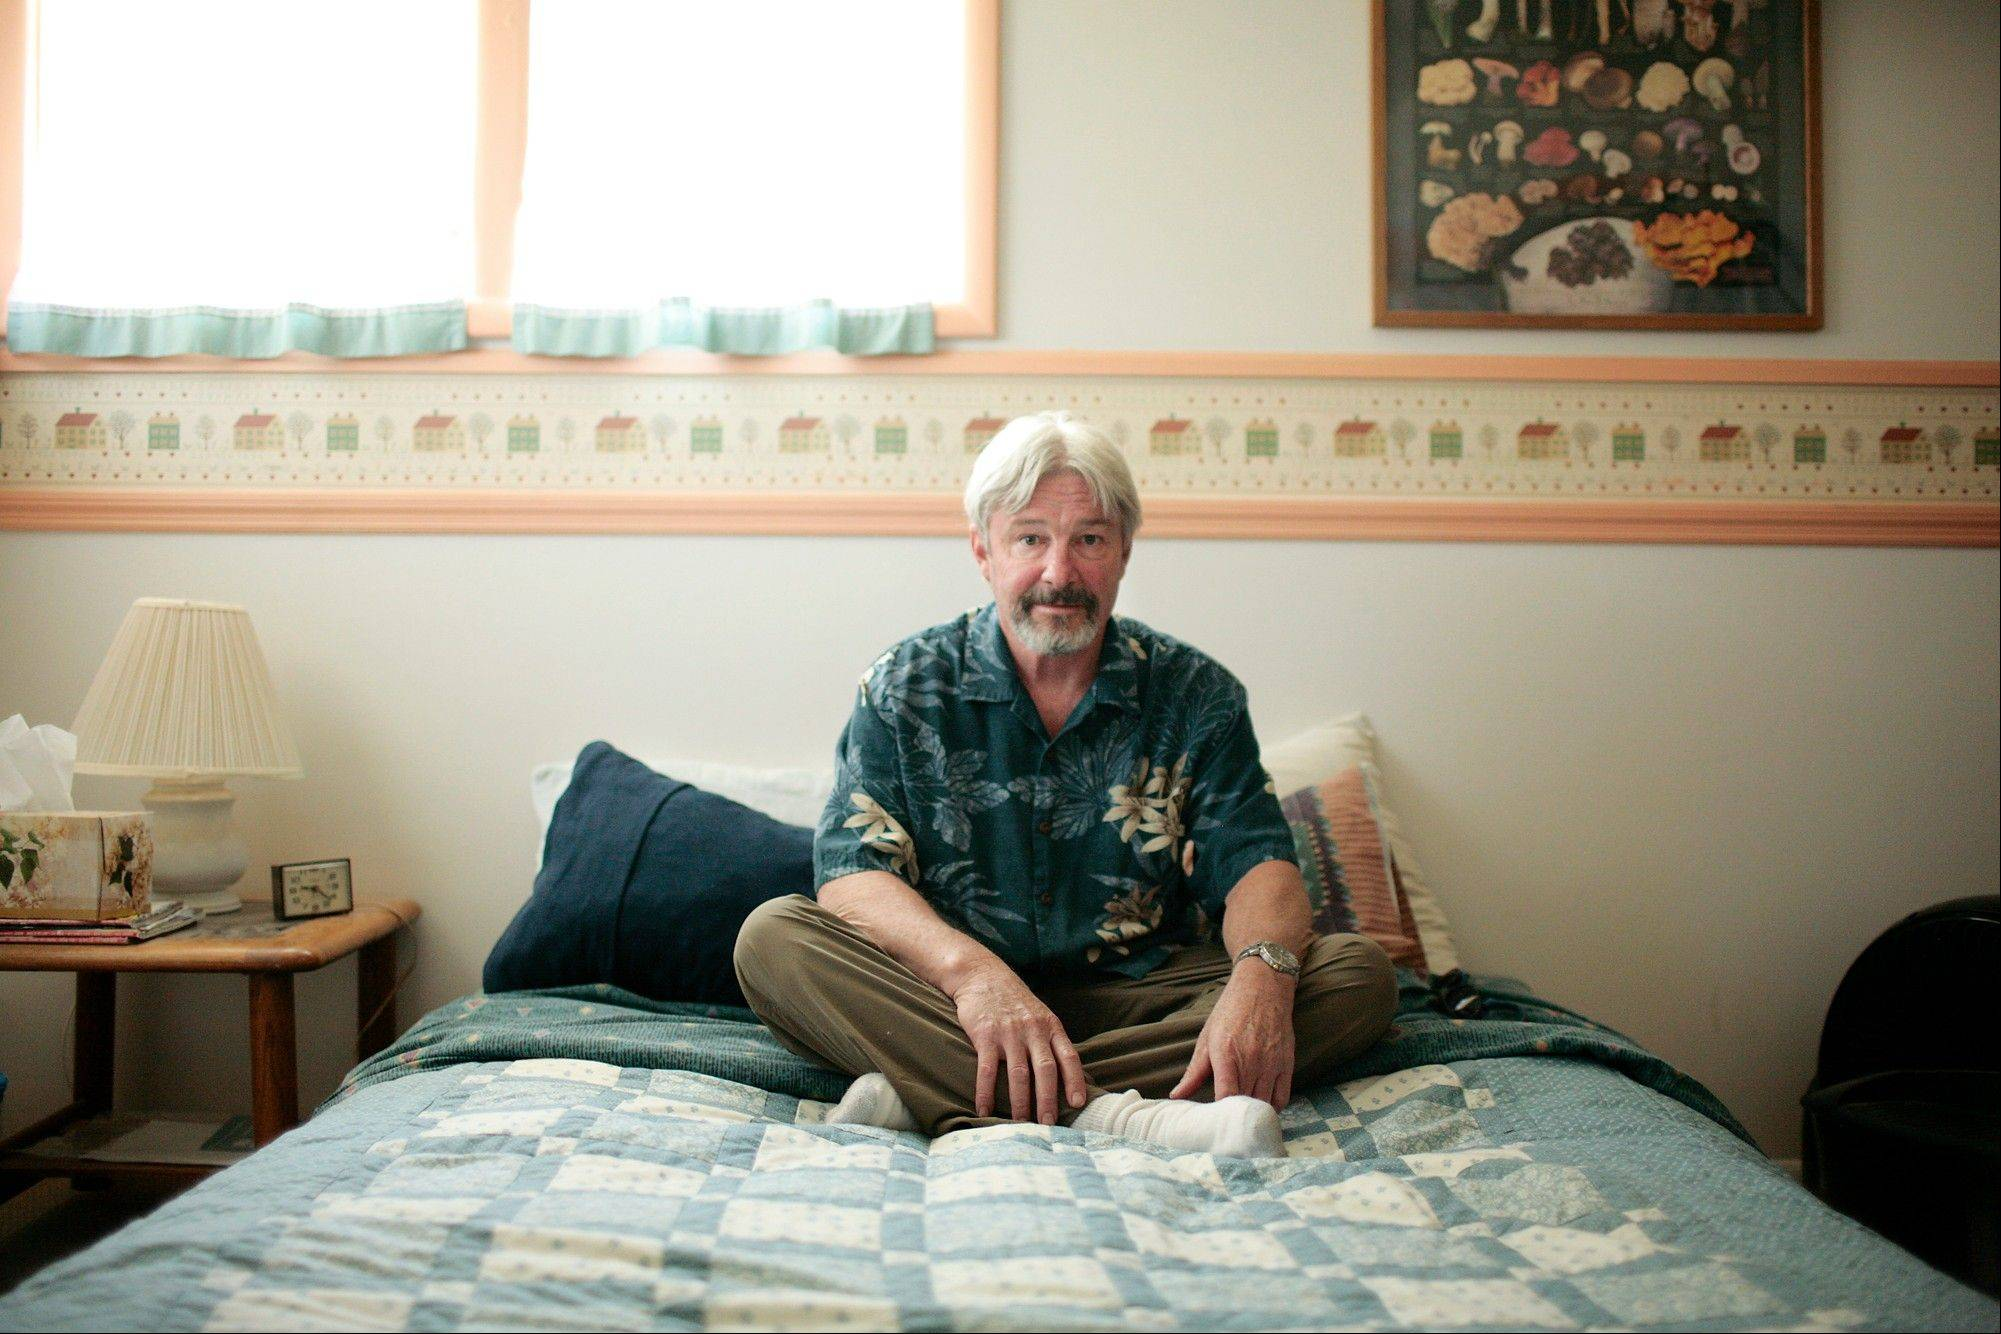 Don Killian sits on the bed he offers up to strangers at no cost in Bozeman, Mont. Killian is one of the 150 Bozeman, Mont., members of CouchSurfing.org, a website for travelers looking for a free place to stay.